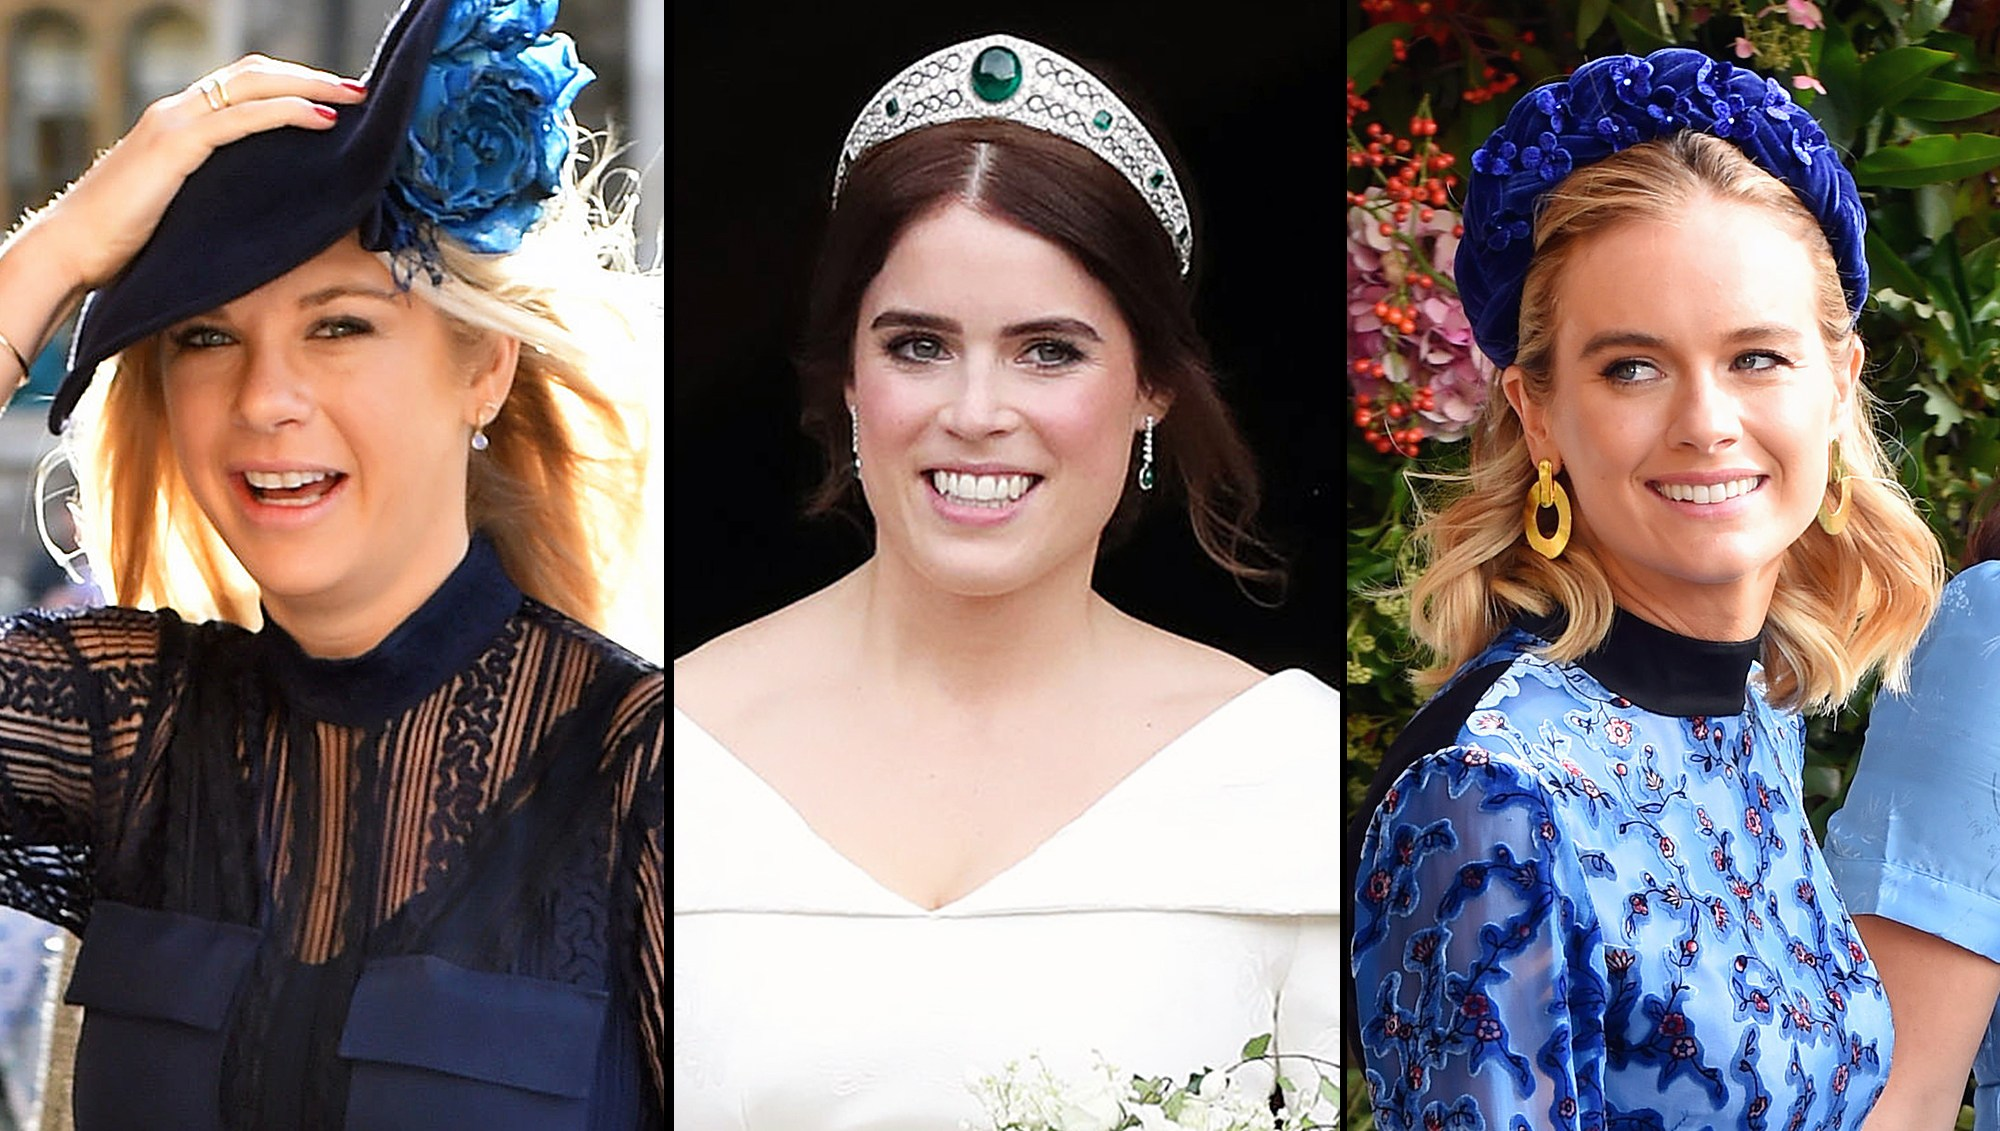 Chelsy Davy Cressida Bonas Princess Eugenie Wedding Prince Harry Ex